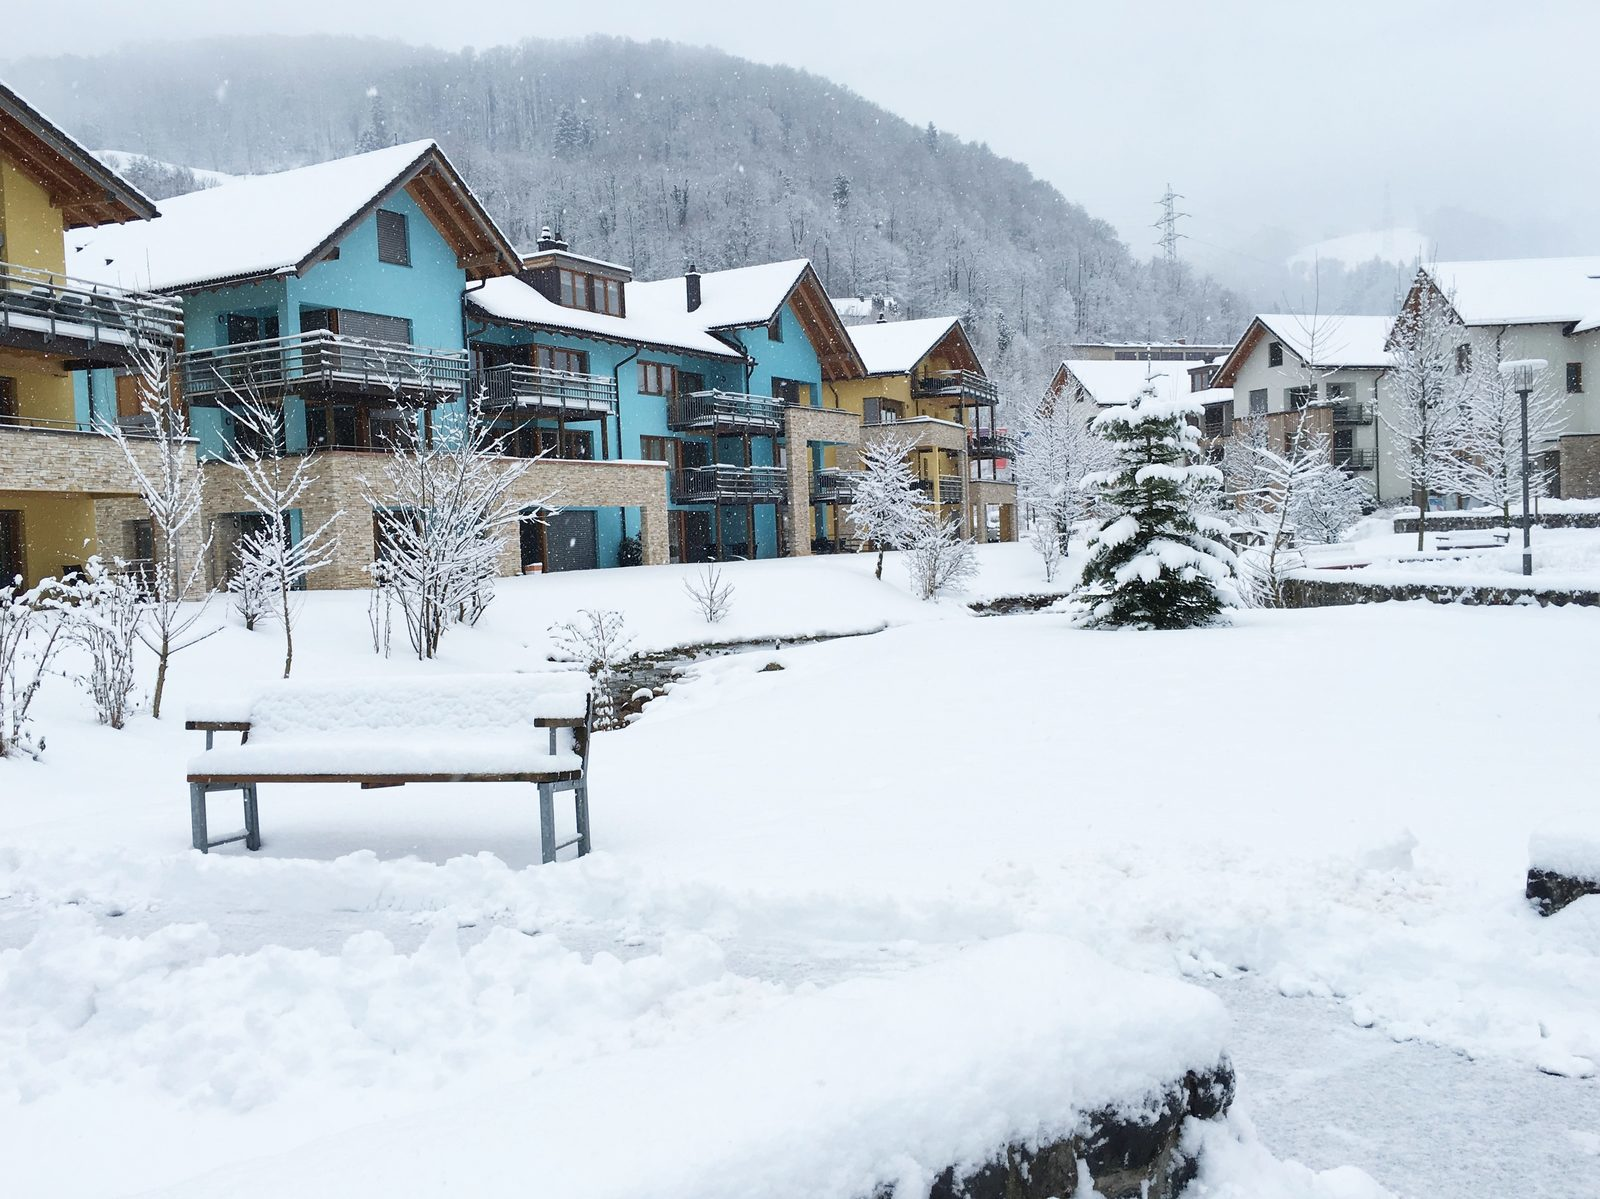 The village square of Resort Walensee in the region of Heidiland, Switzerland, during a winter sports holiday on the Flumserberg